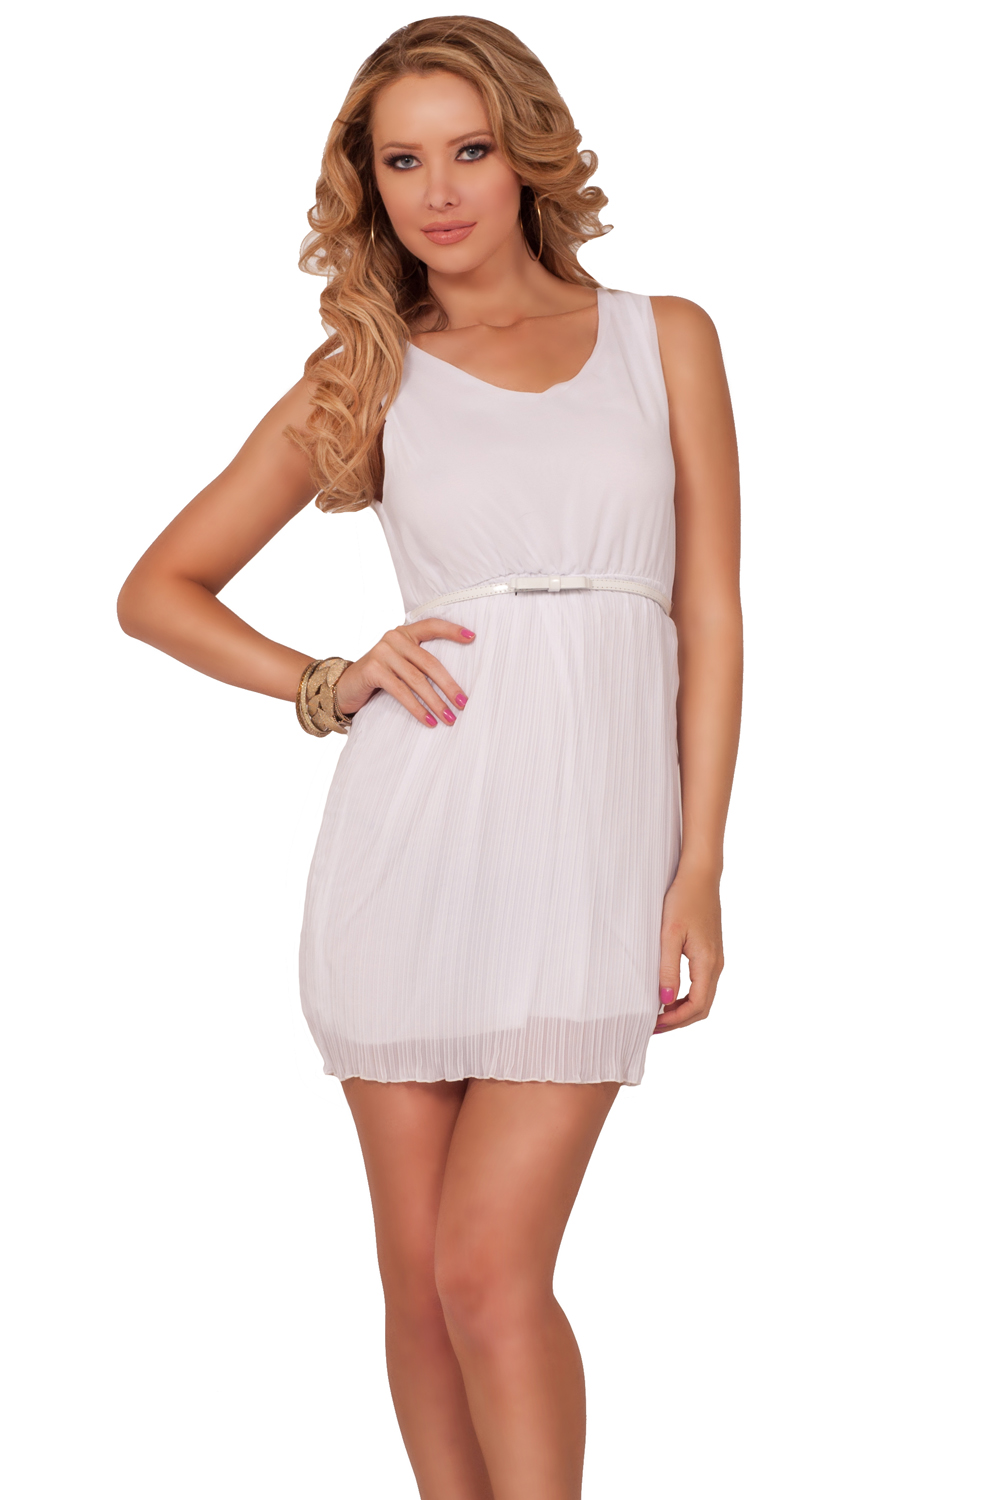 Short Skinny Dresses : Online Fashion Review